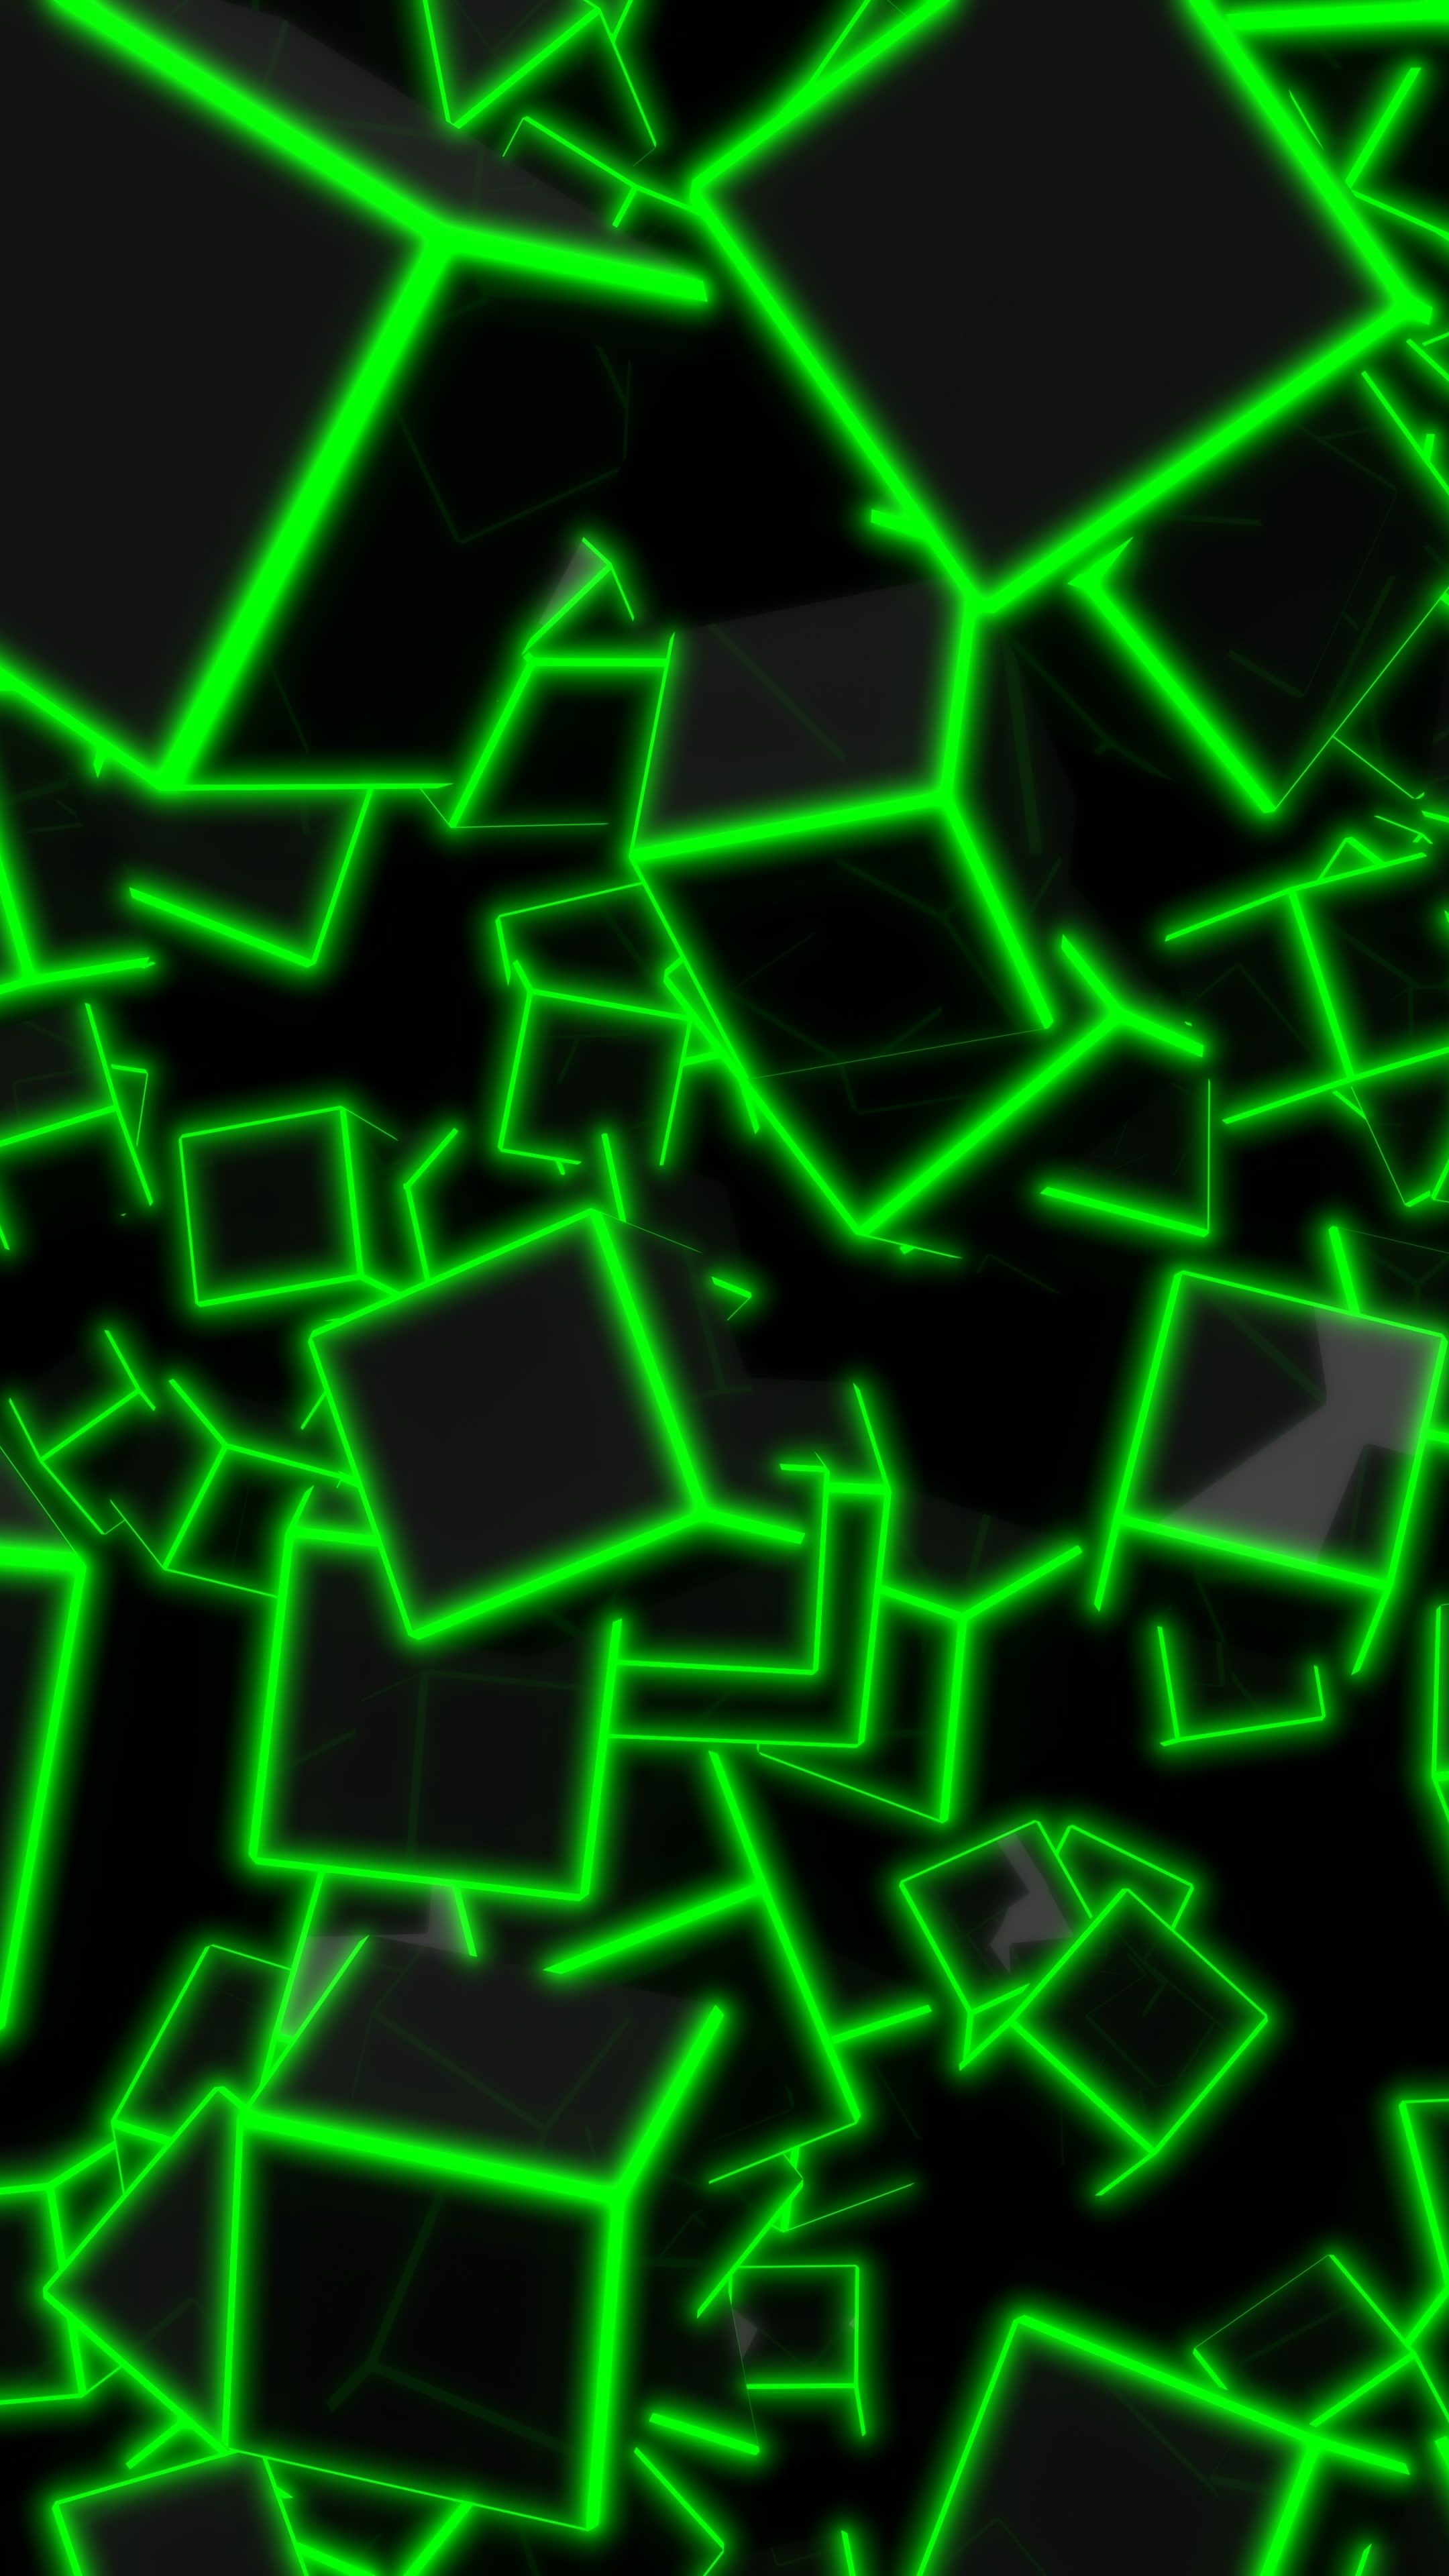 3d Laser Wallpapers 3d Green Neon Cubes 8k Uhd Wallpaper